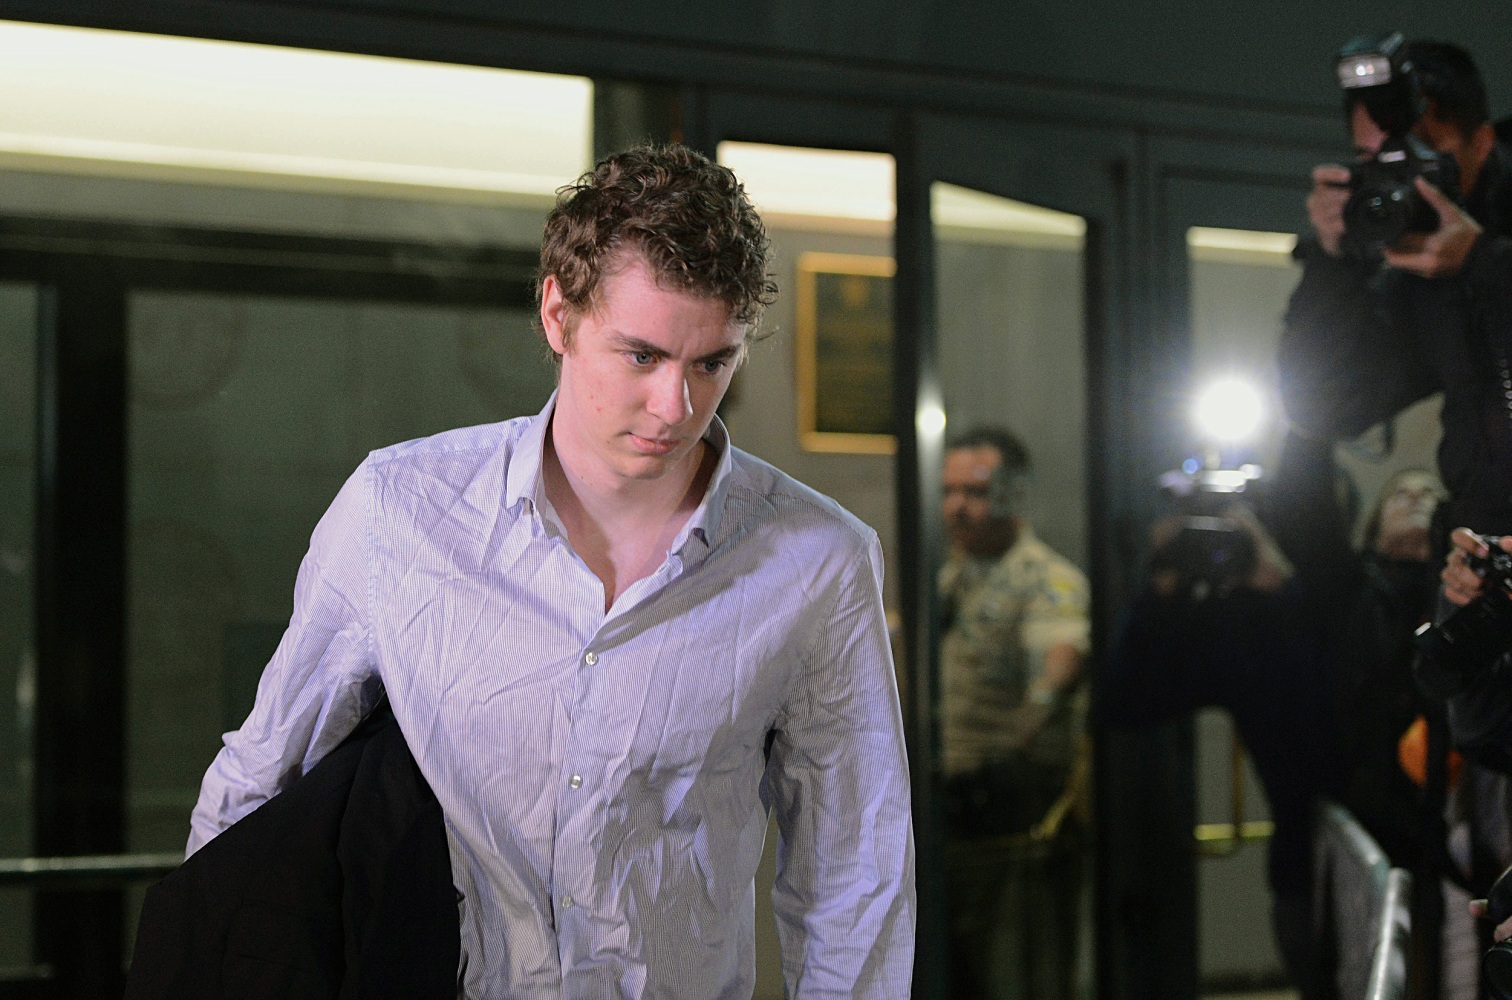 Brock Turner seeks to have rape convictions overturned